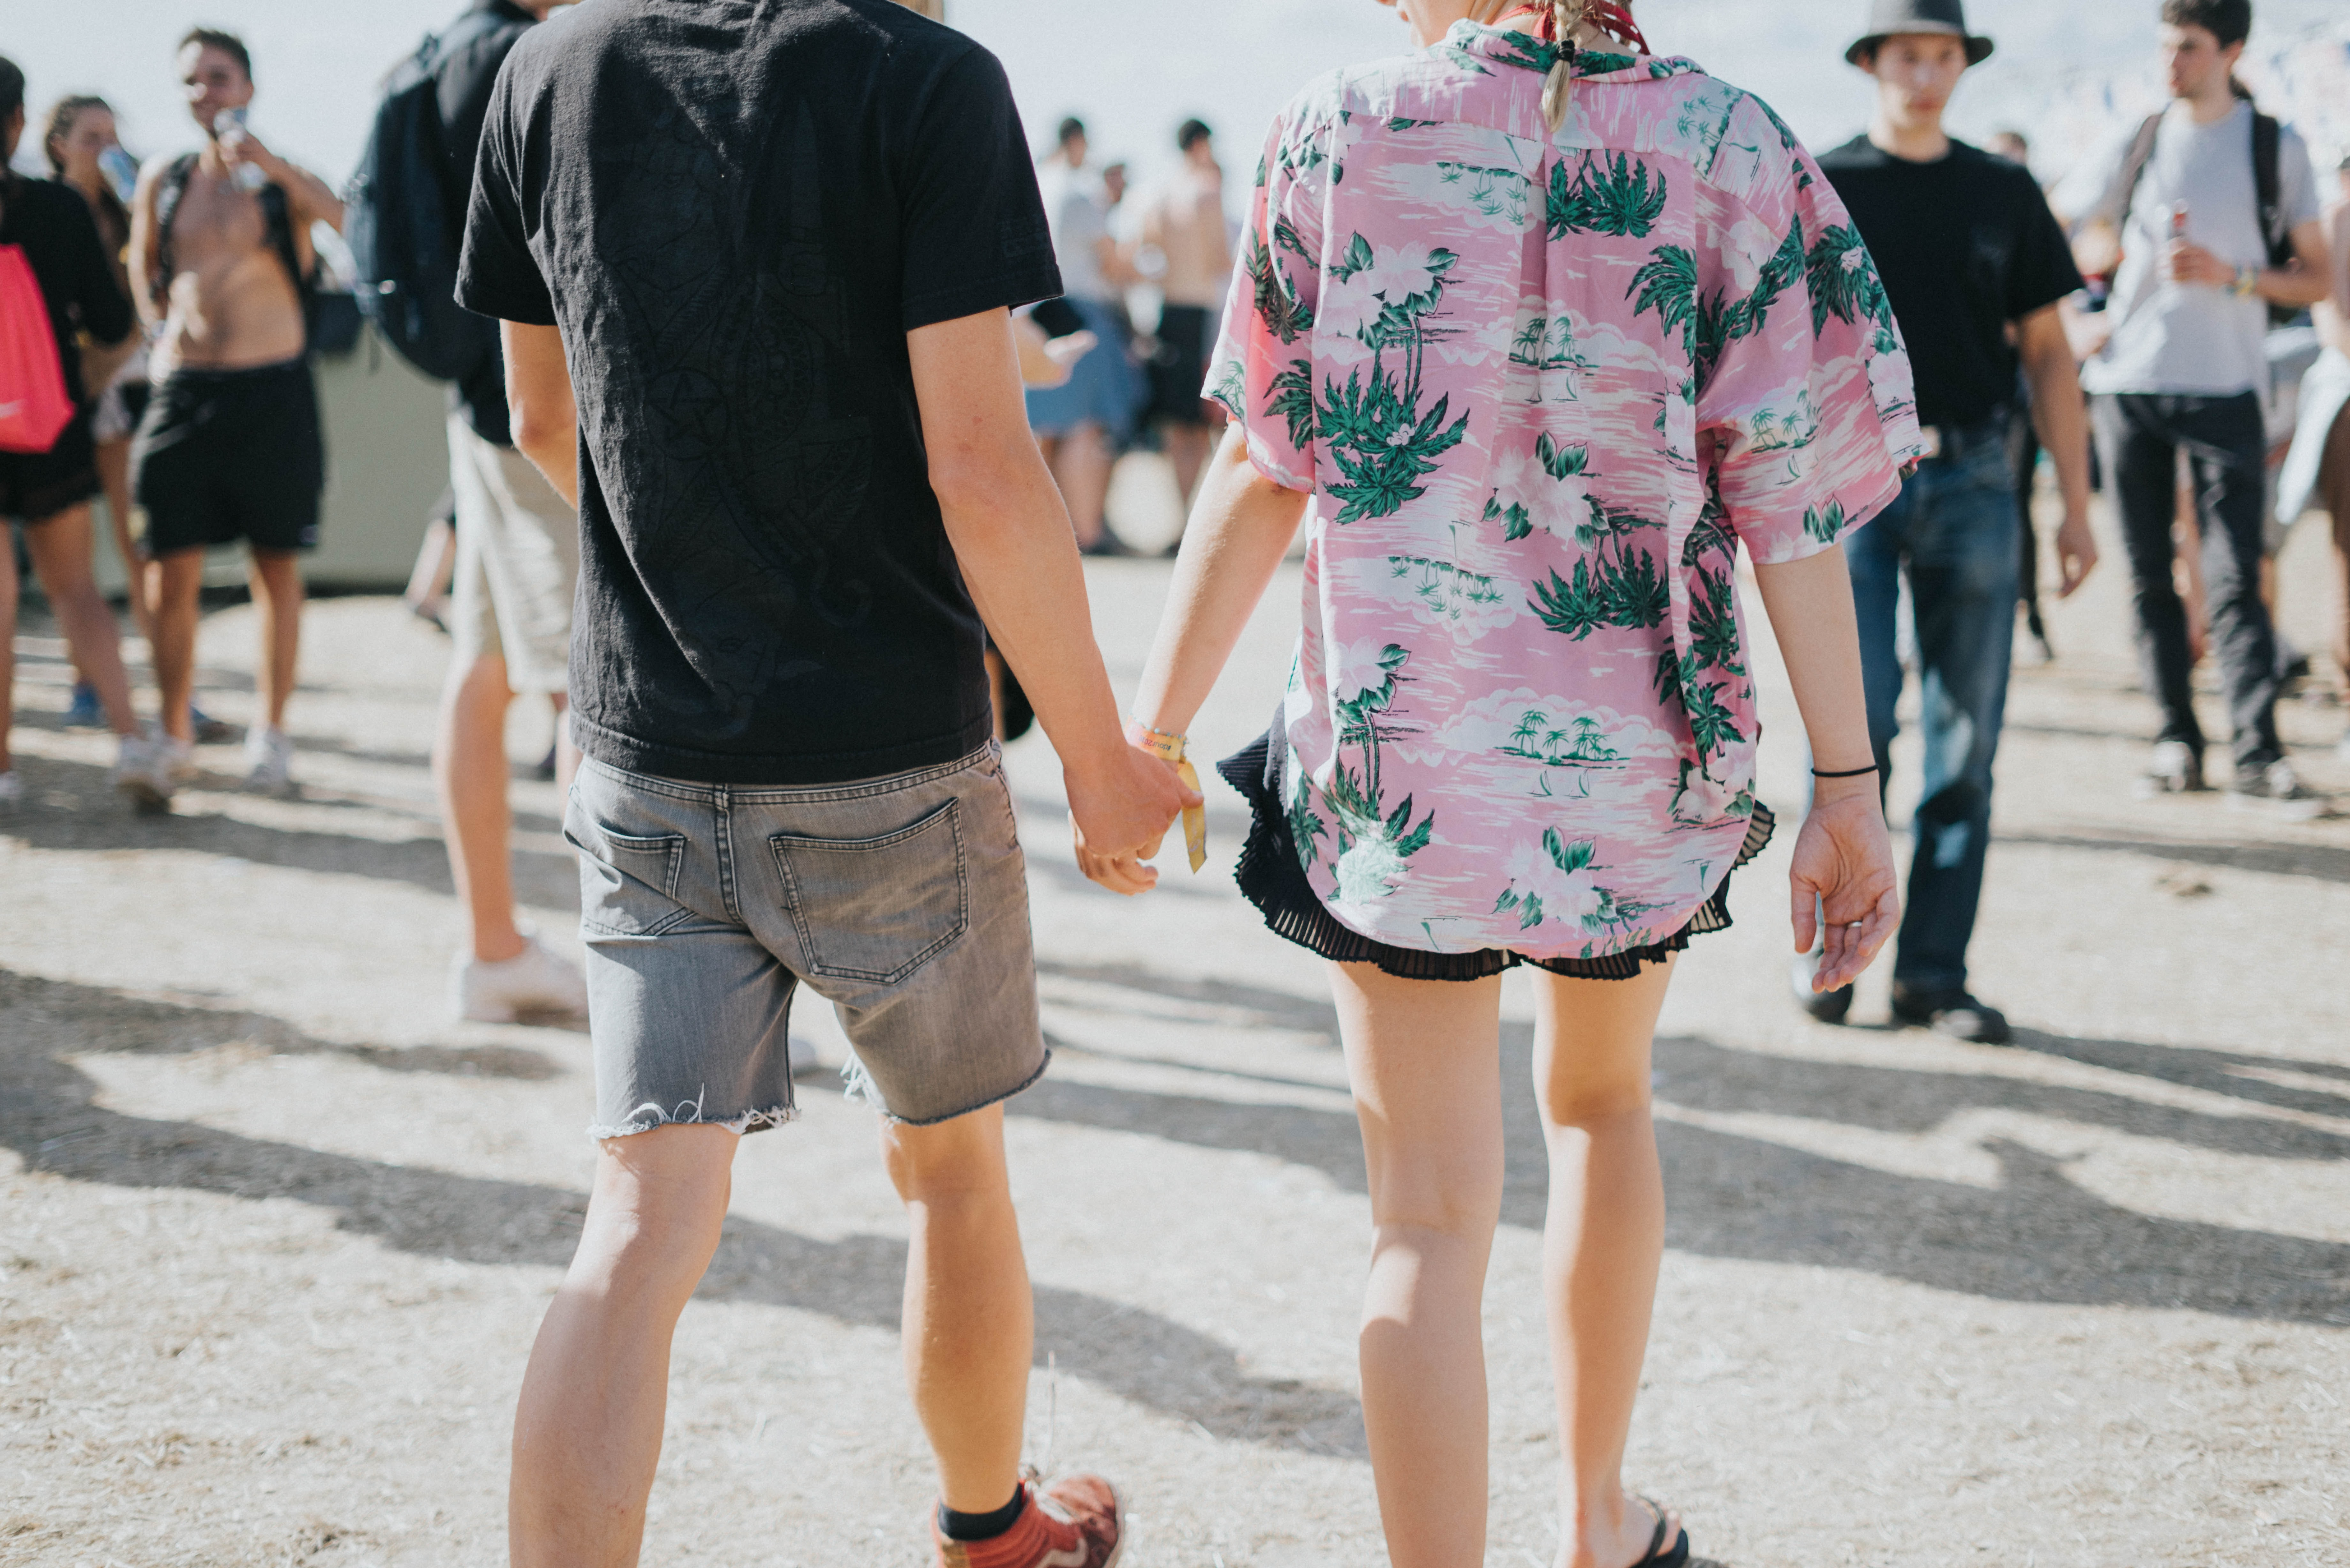 man and woman holding hands at middle of street